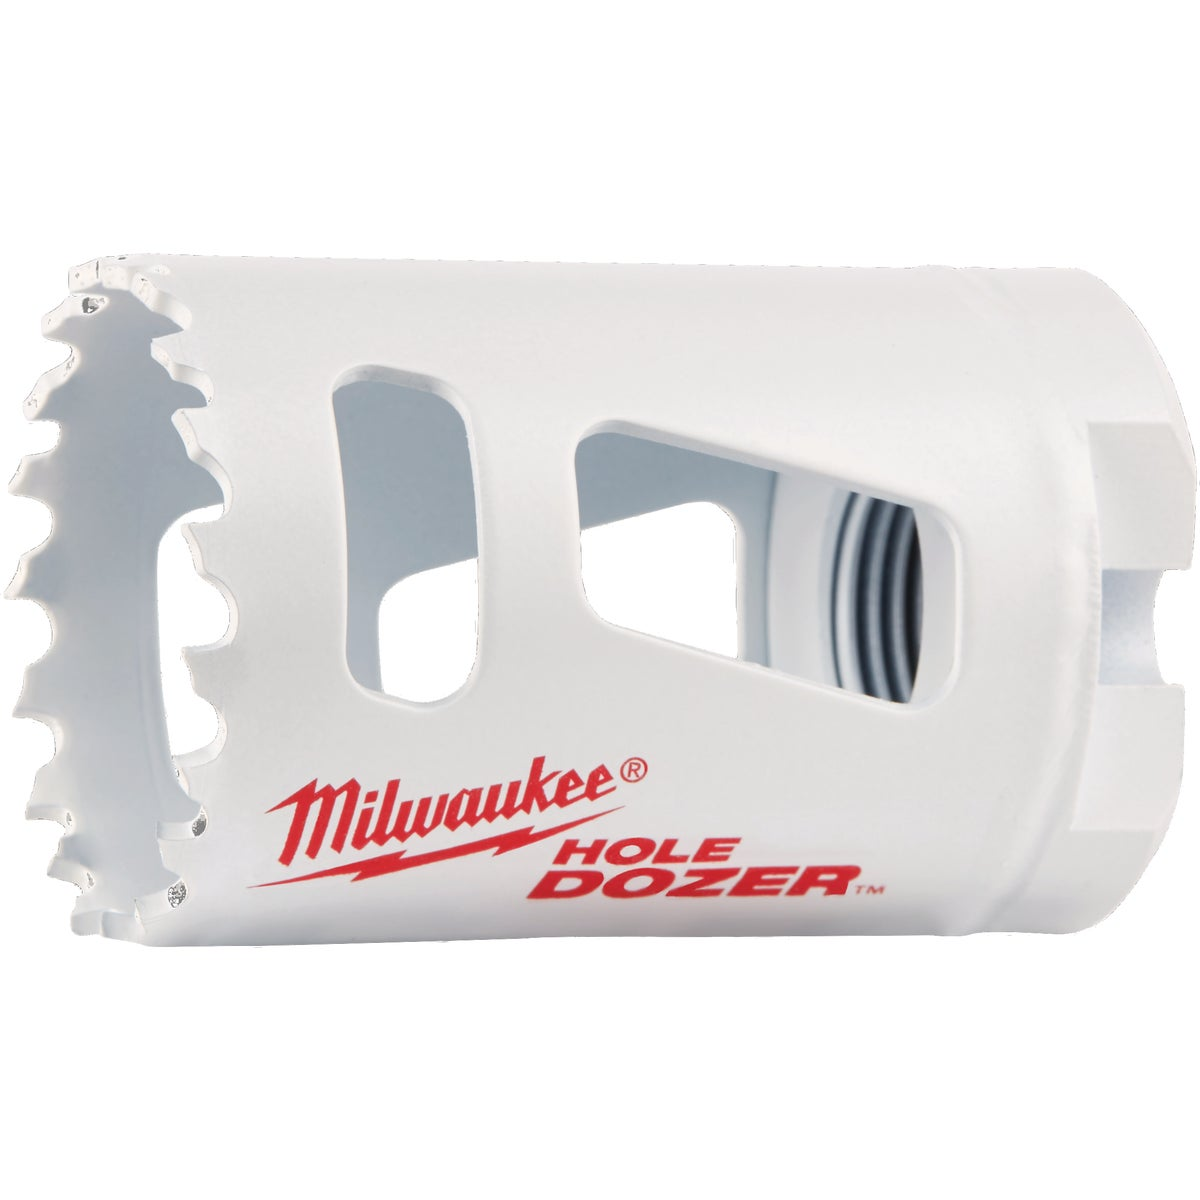 "5/8"" ICE HOLE SAW - 49-56-0012 by Milwaukee Accessory"